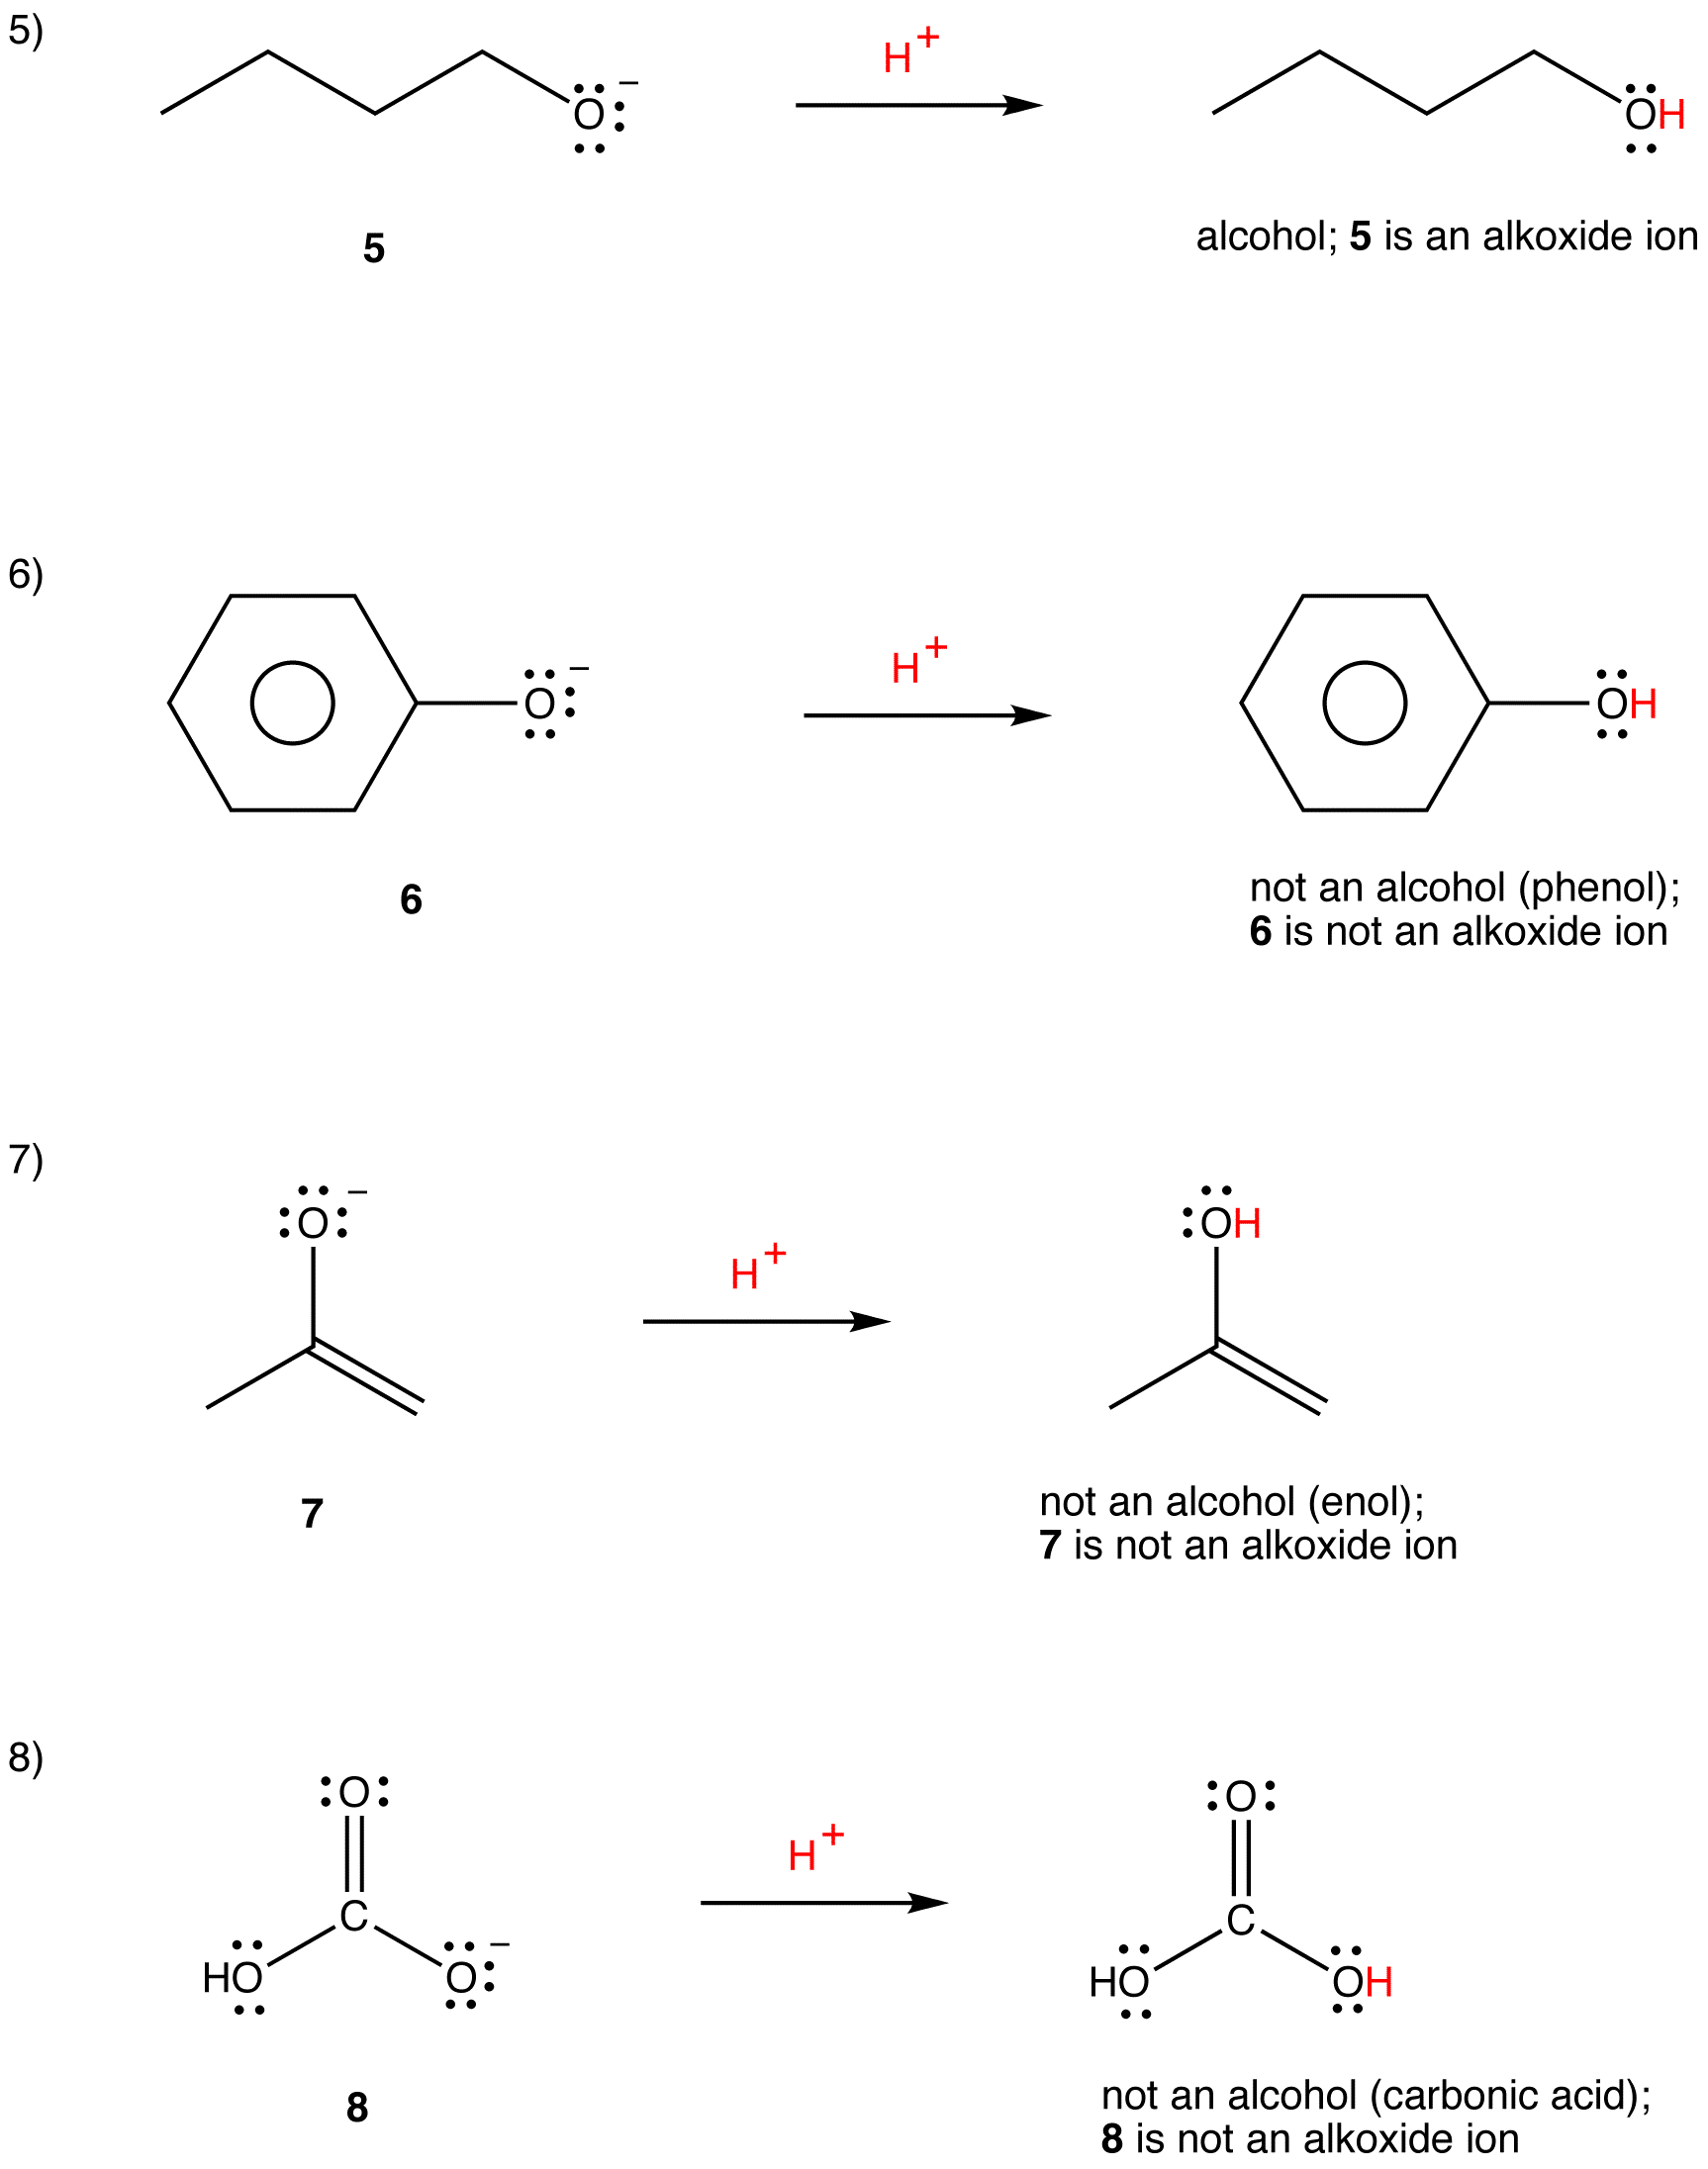 Answers Alkoxide Ion Ochempal